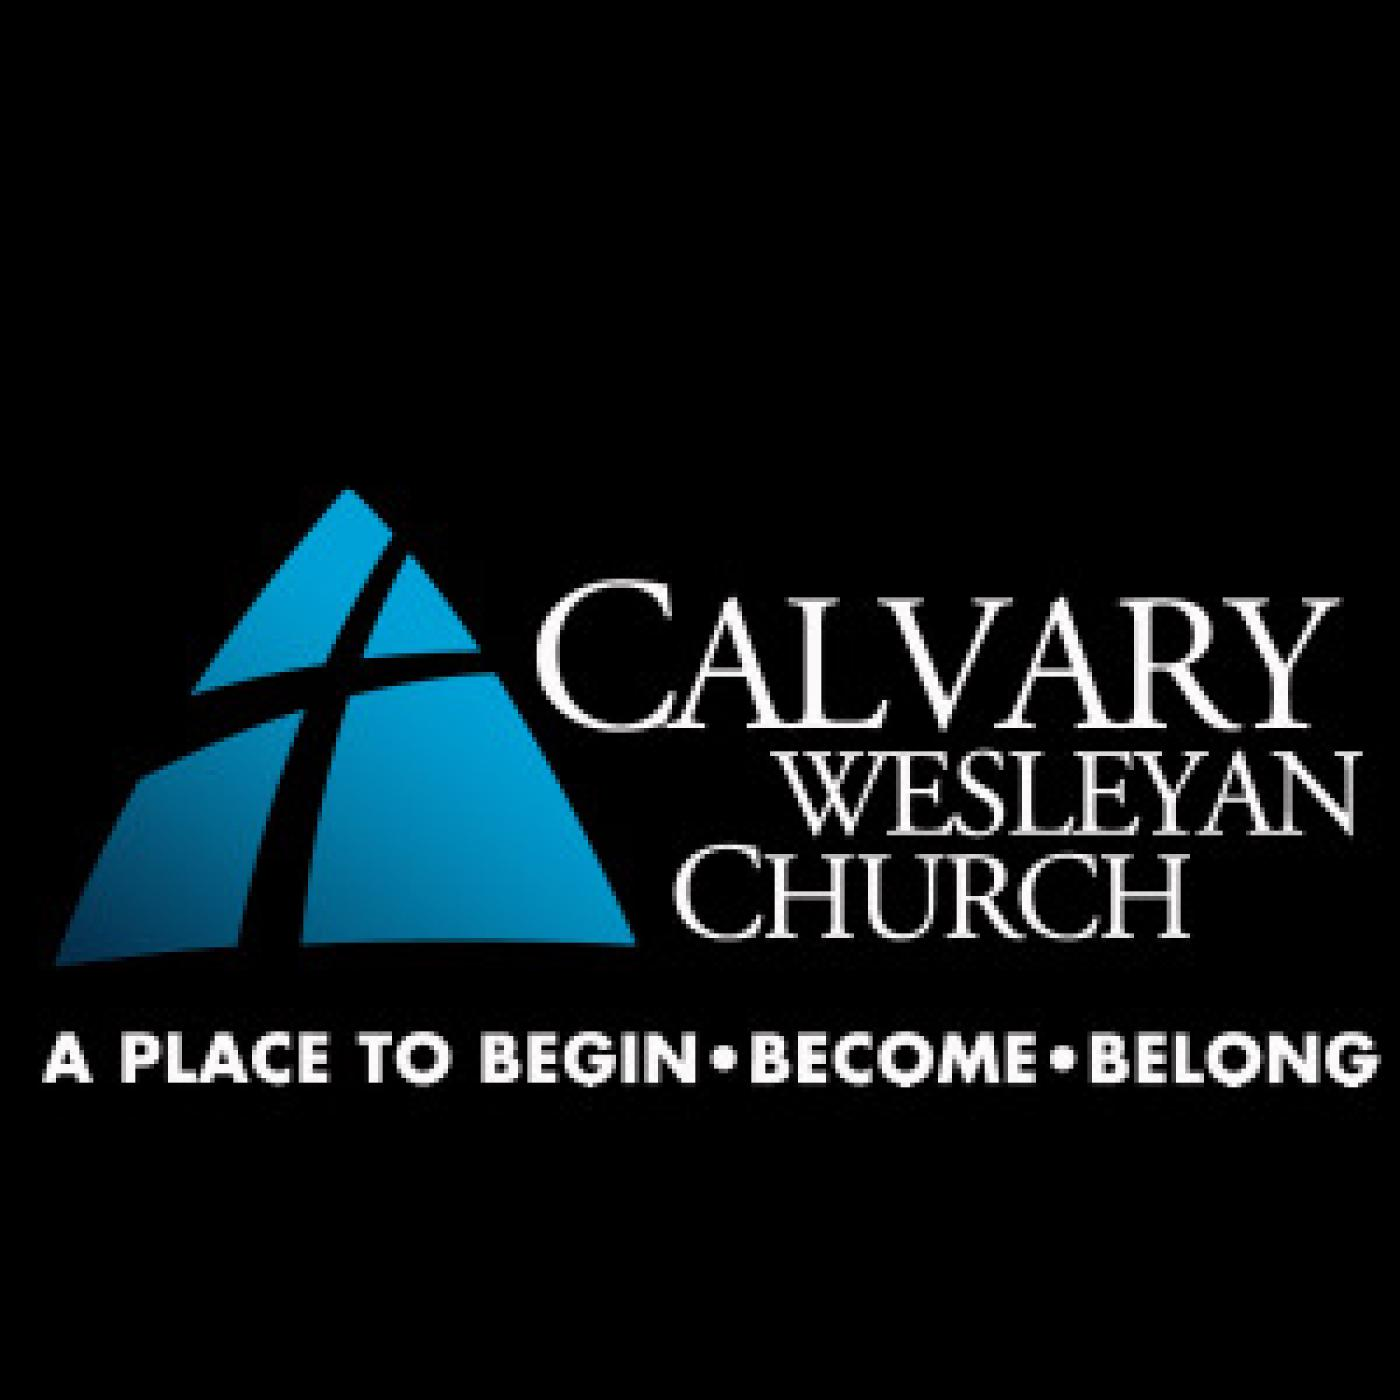 Calvary Wesleyan Church